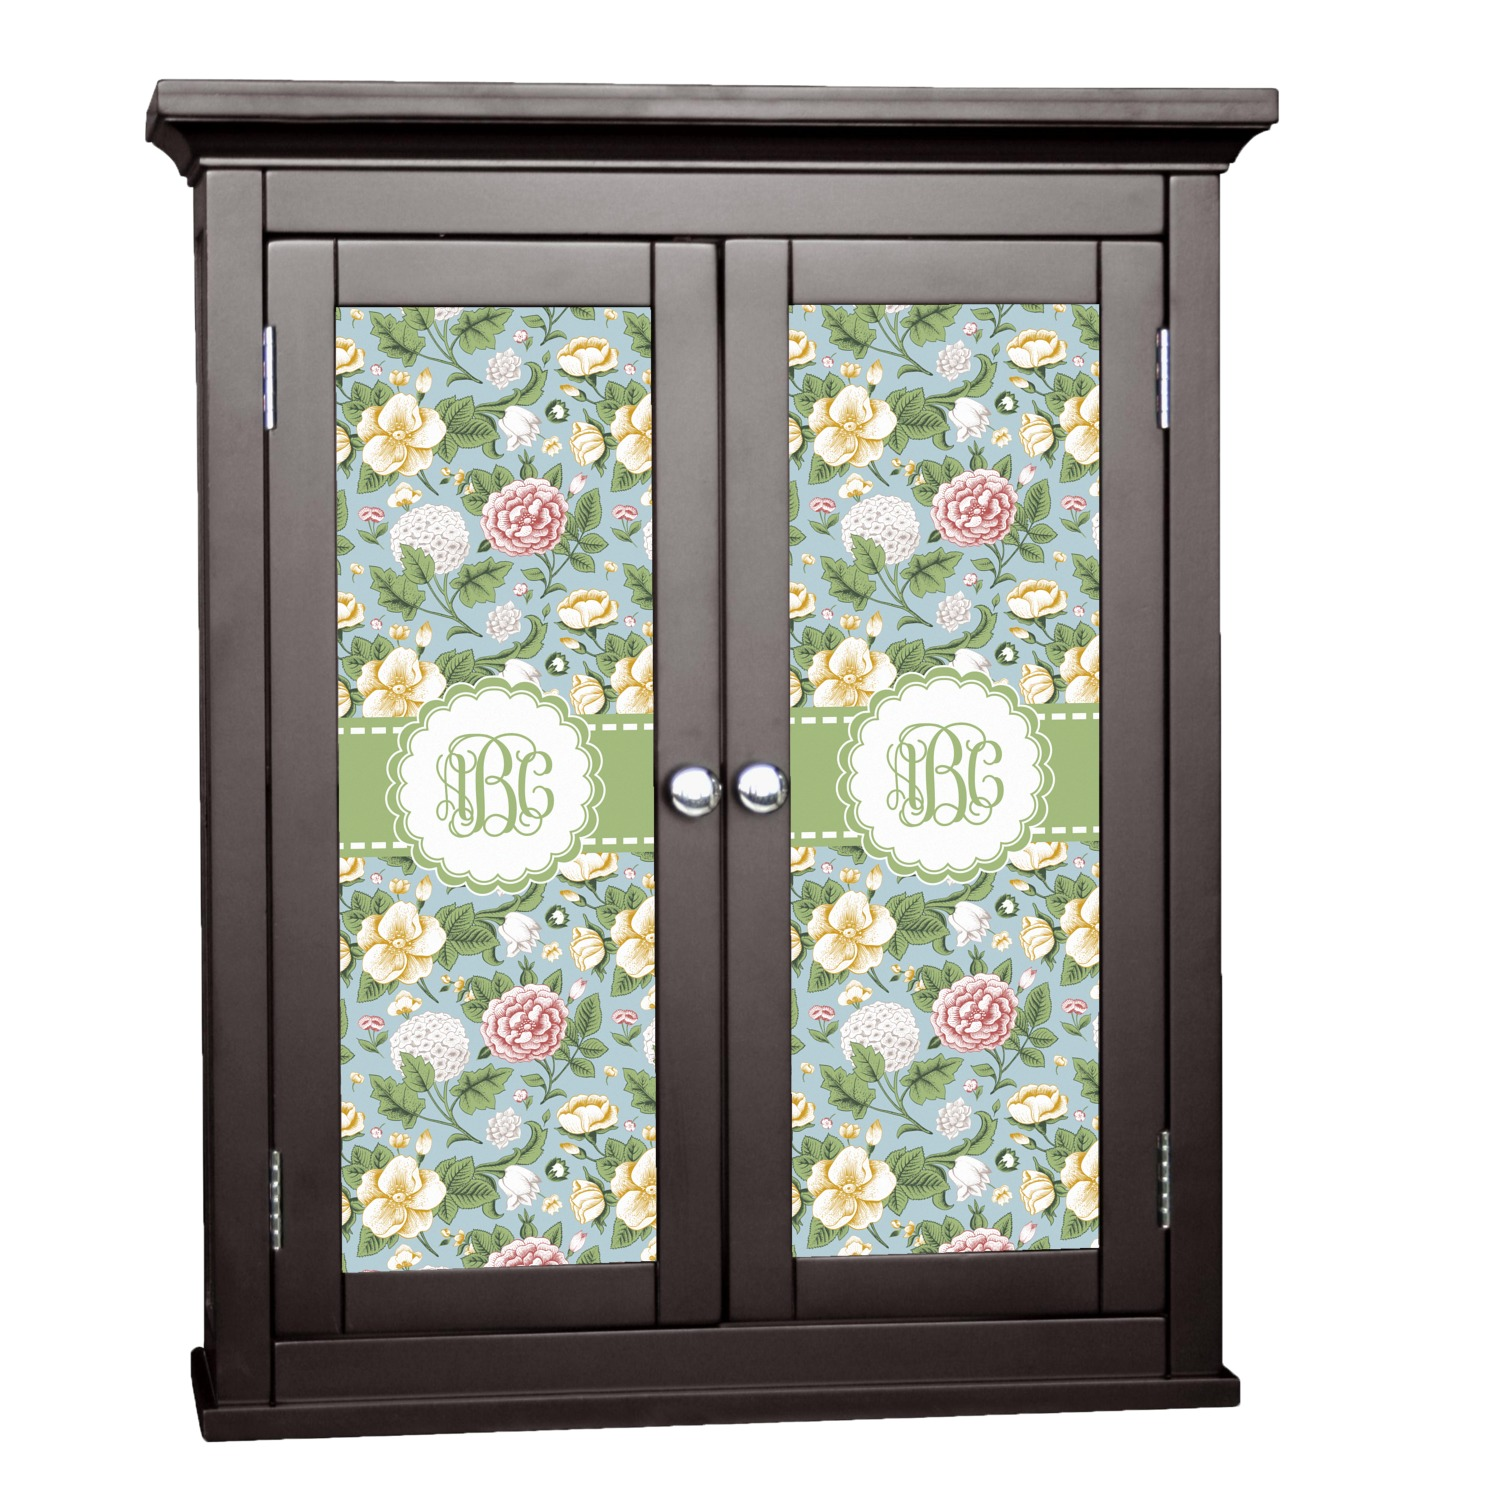 Vintage floral cabinet decal large personalized for Kitchen cabinets lowes with how to make decal stickers